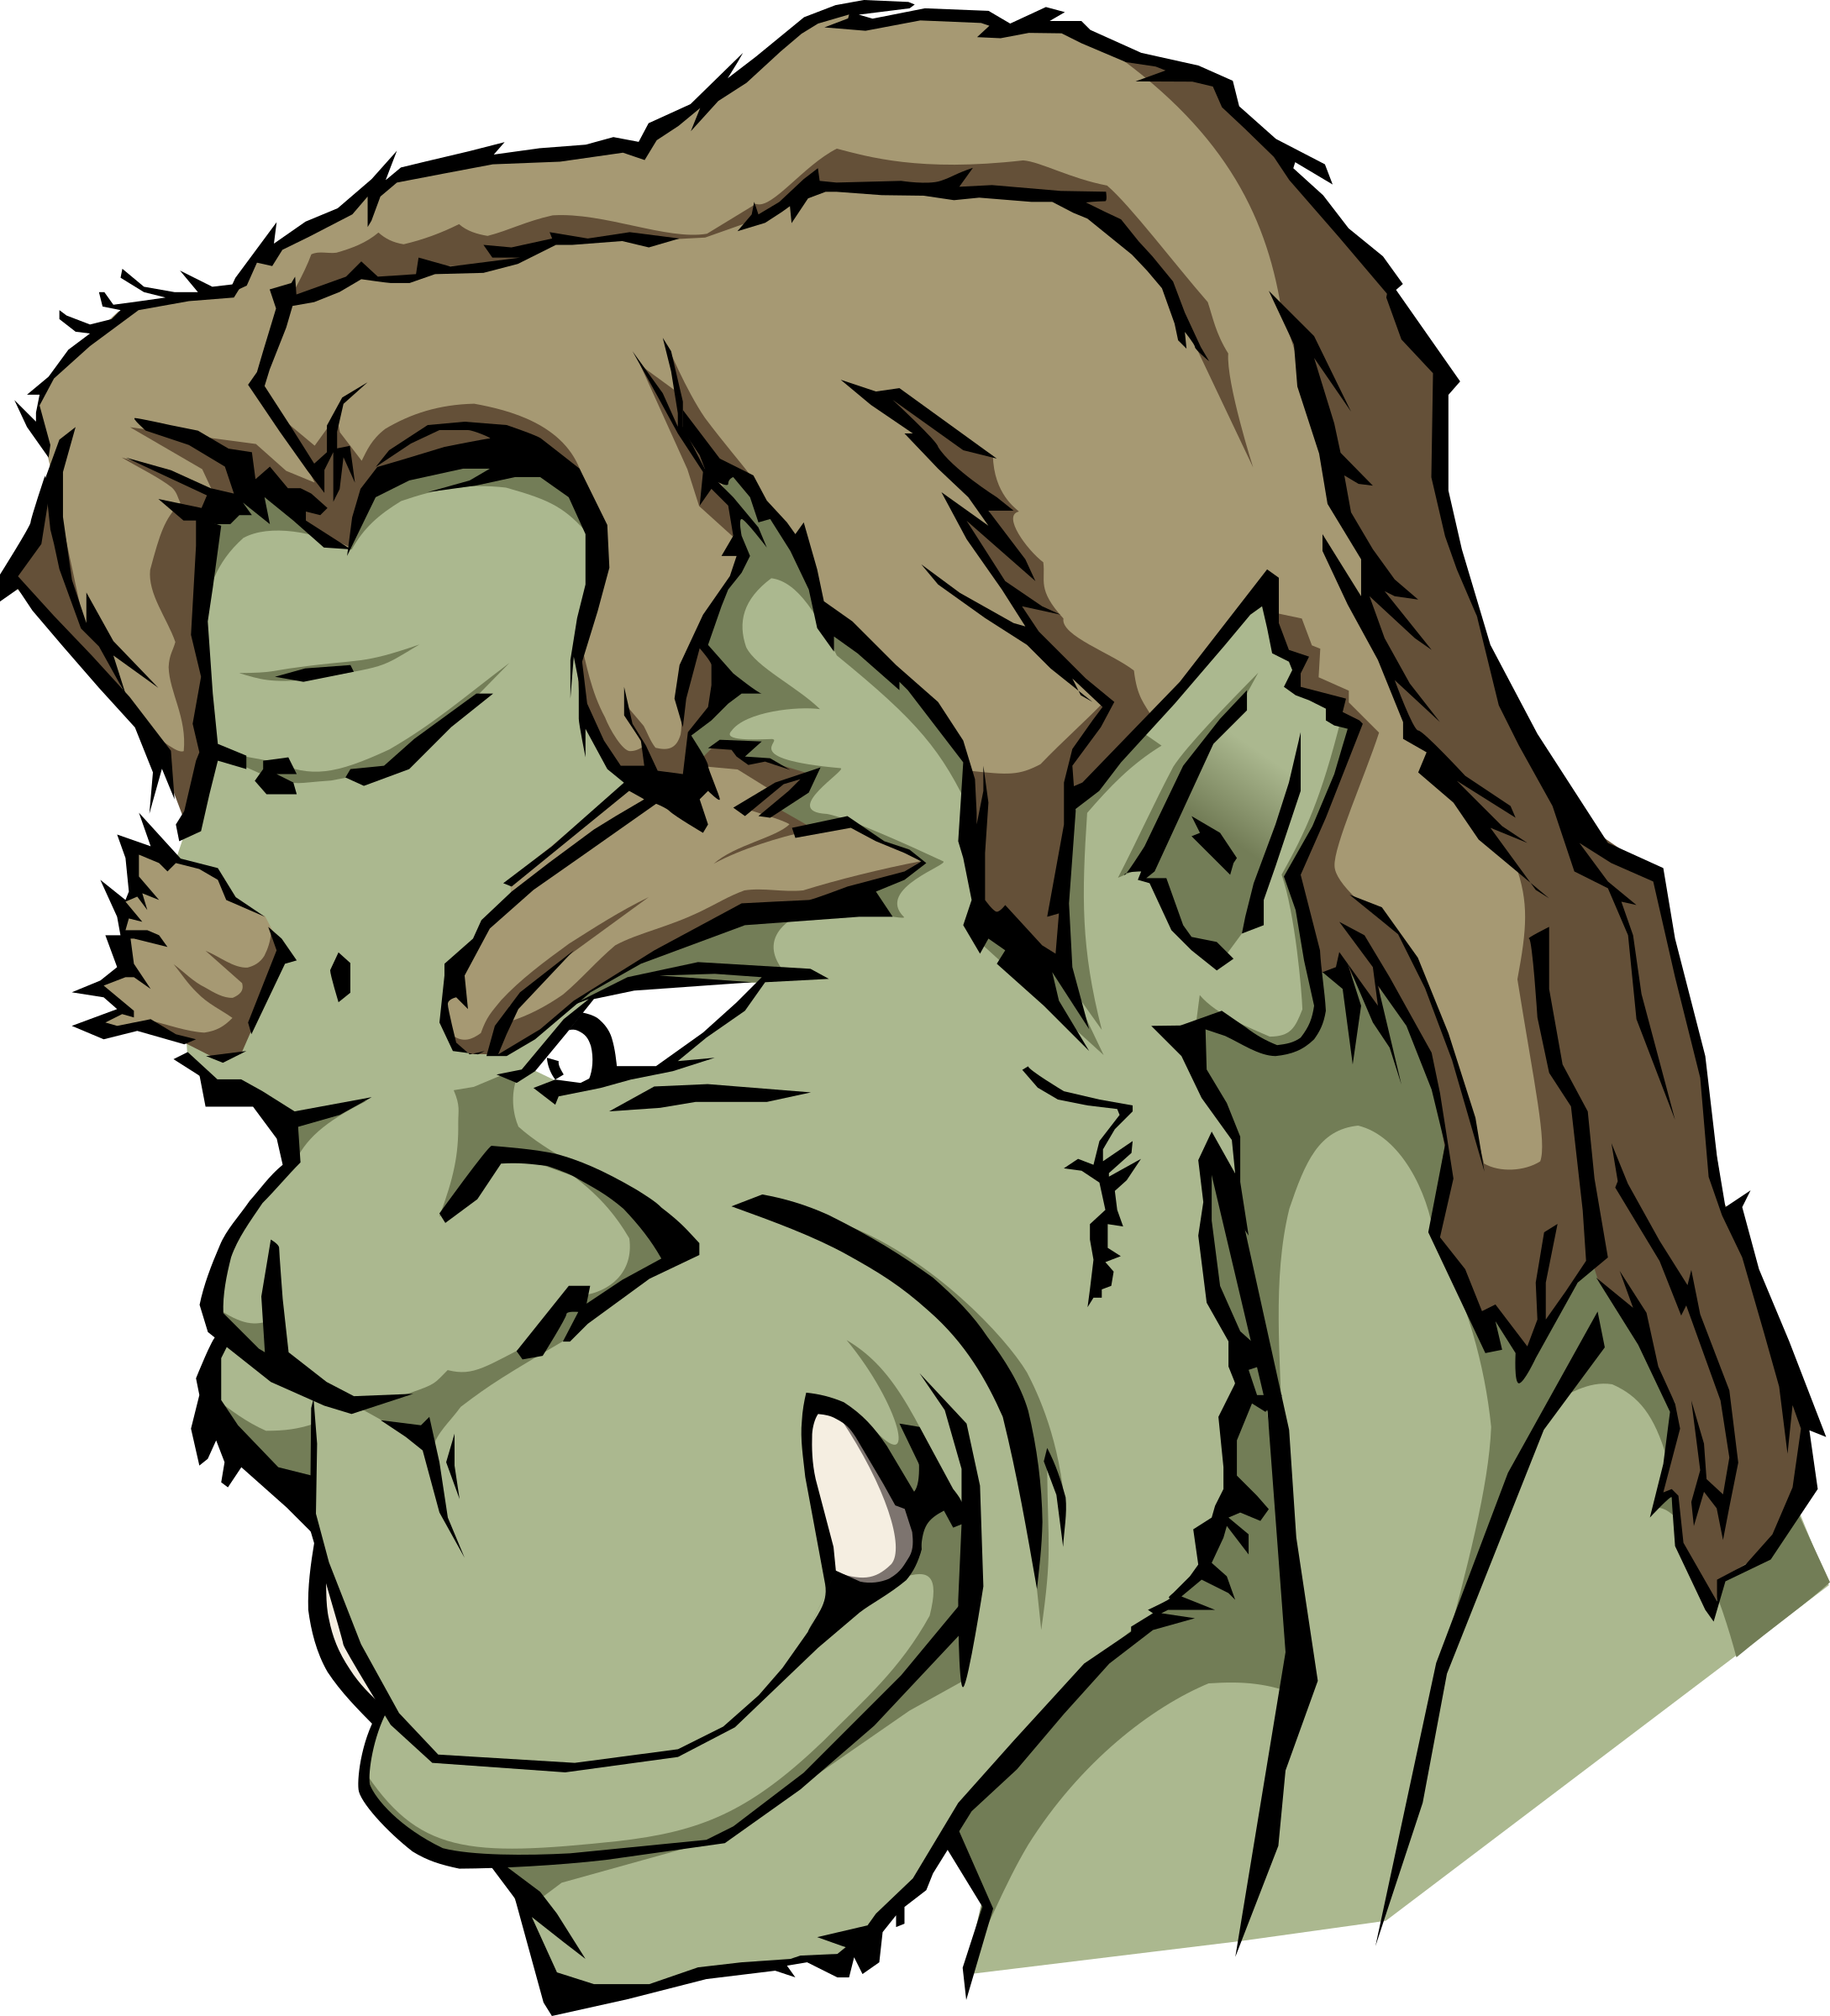 Orc by liftarn